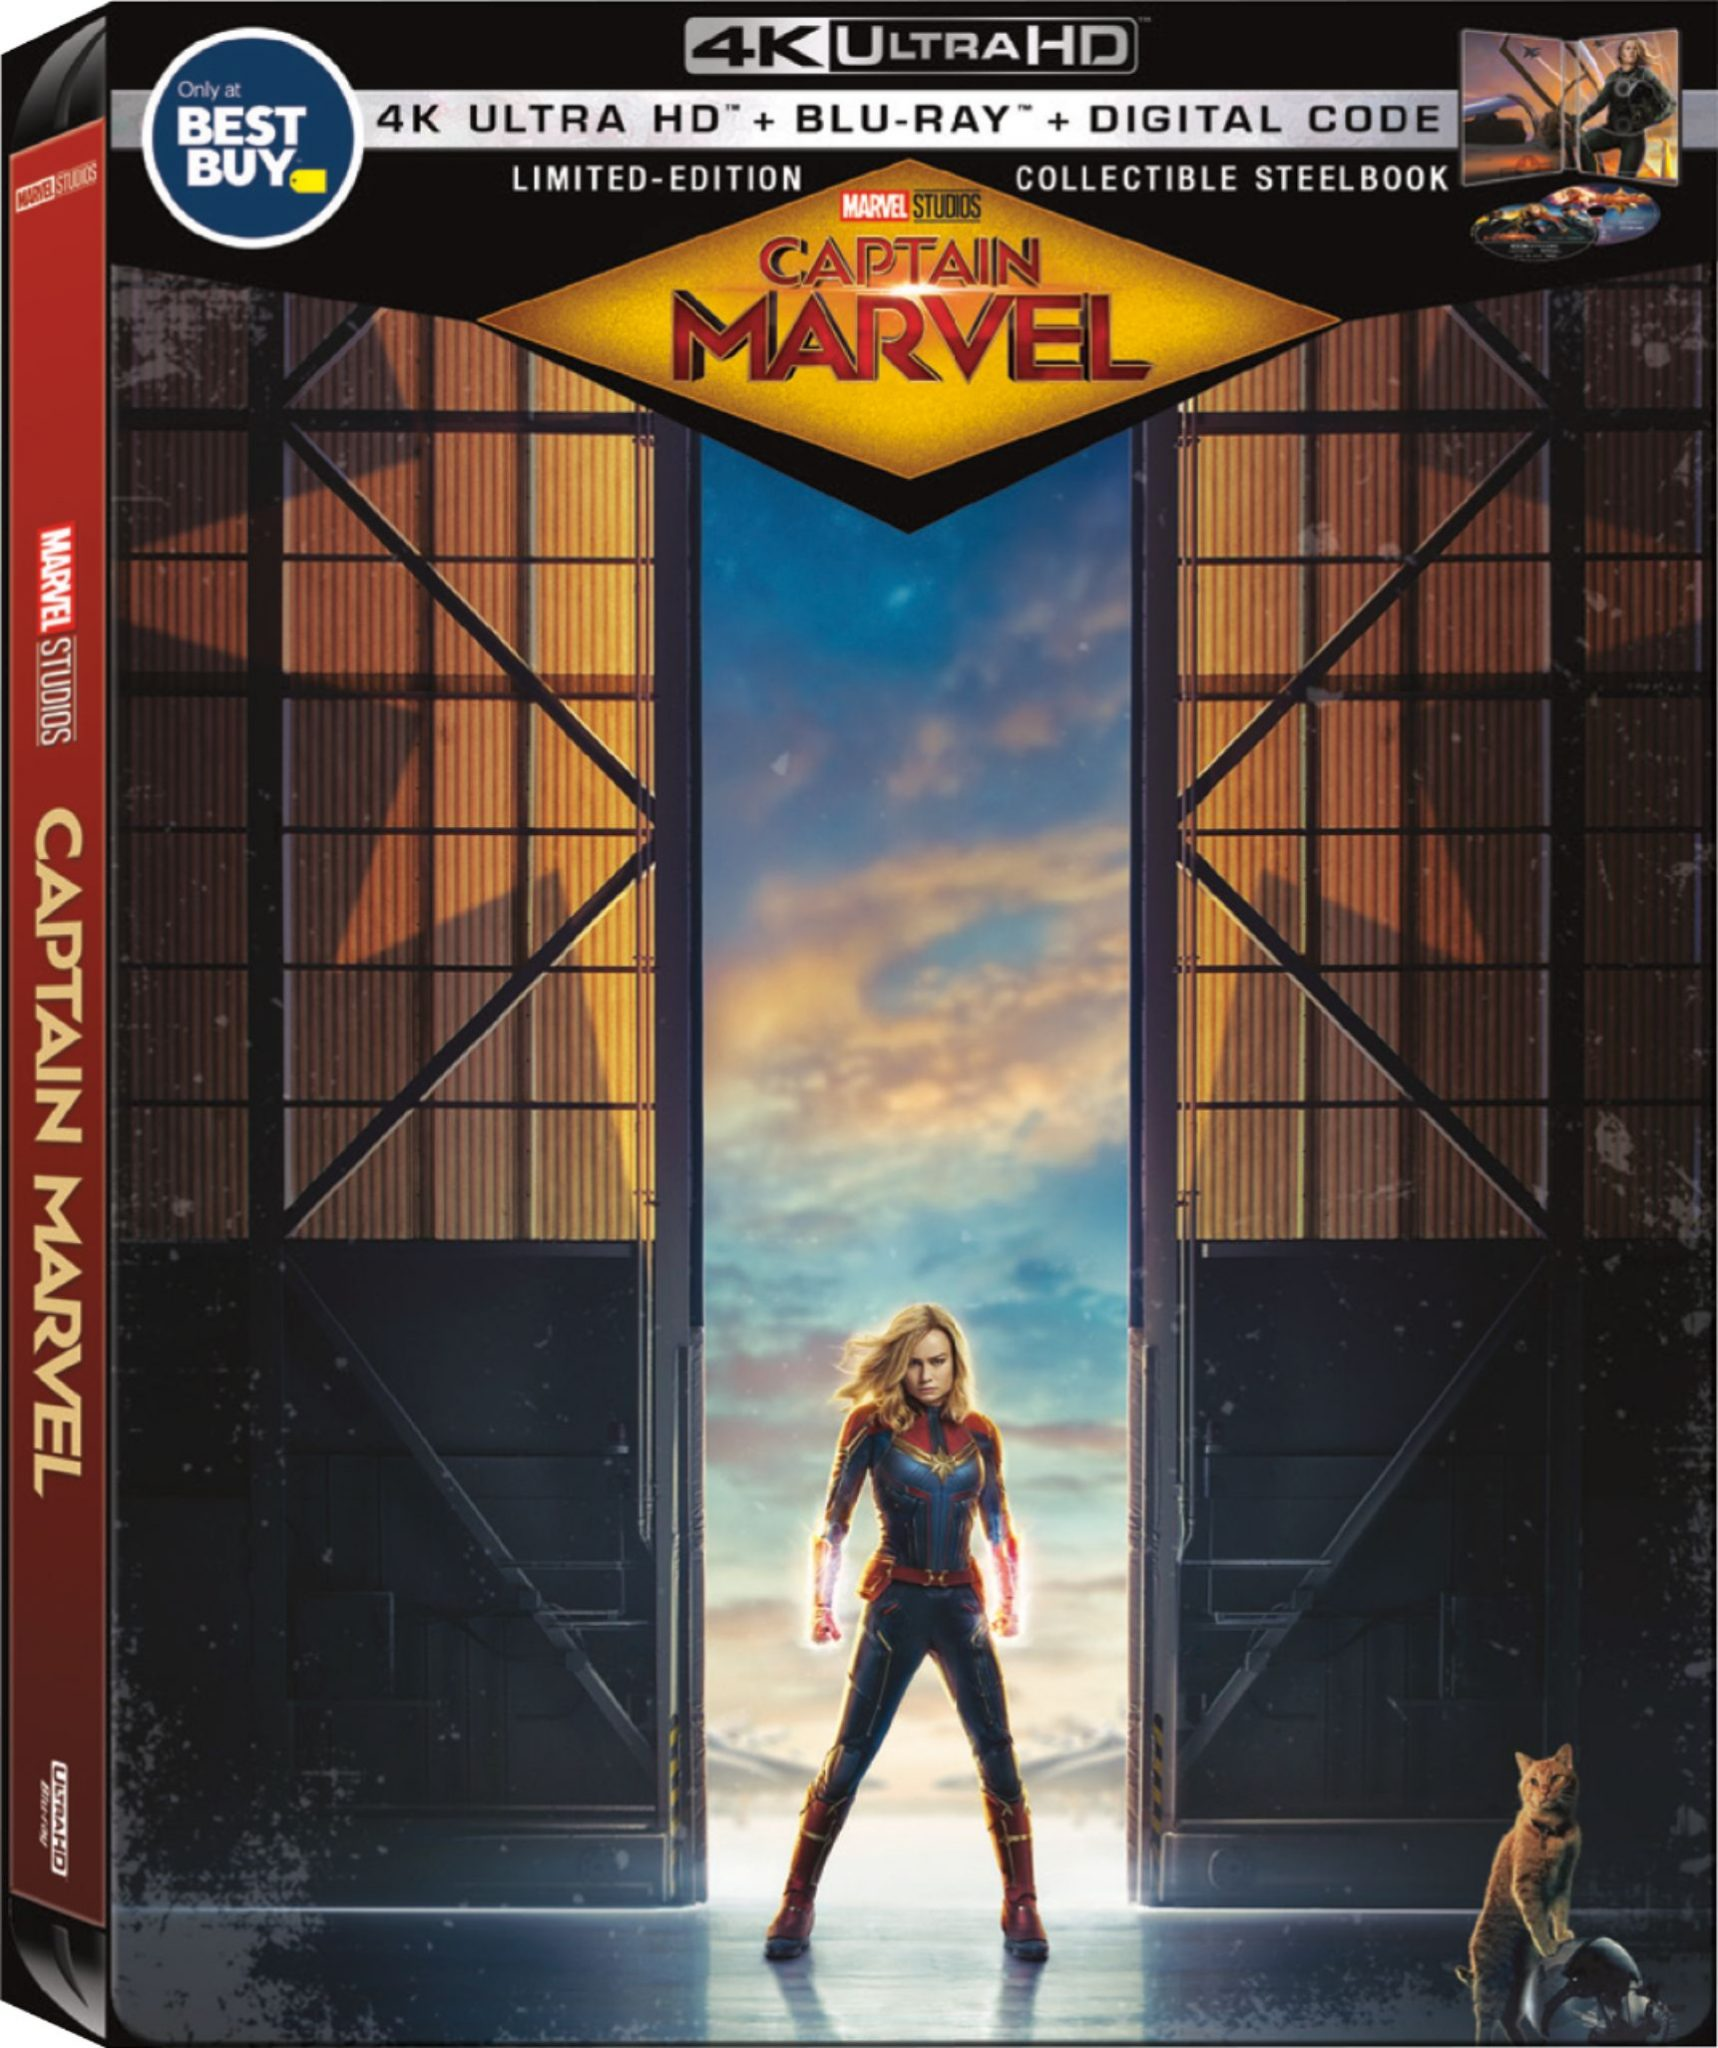 Captain Marvel is now available! Get the Collectible SteelBook format at #BestBuy today! #CaptainMarvel